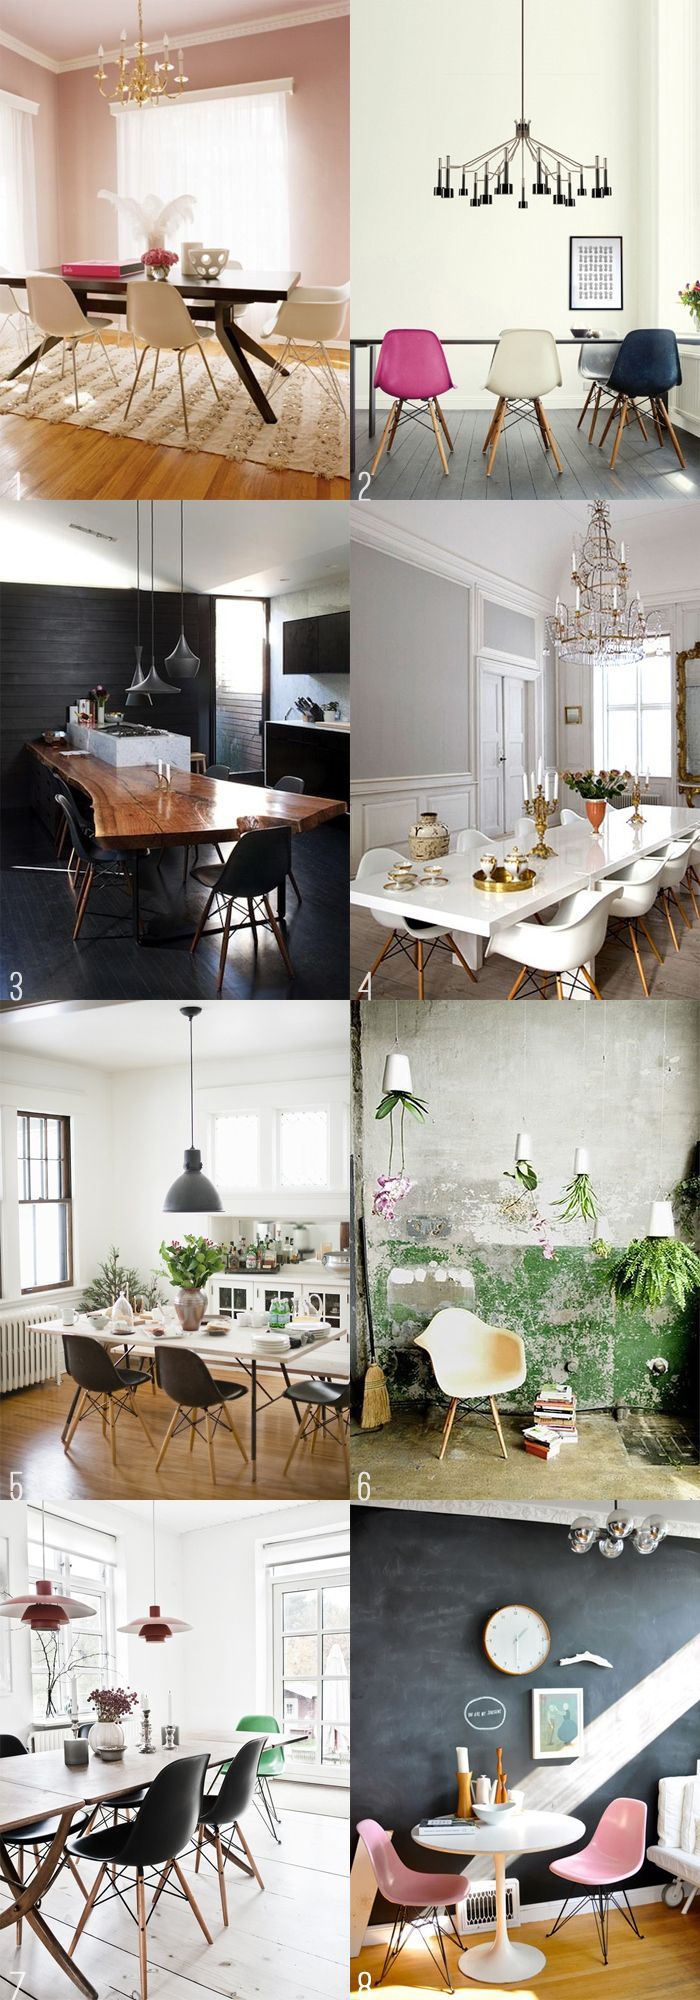 Eames molded plastic chair dining room - Best 25 Eames Dining Ideas On Pinterest Eames Dining Chair Rustic Home Electronics And Scandinavian Home Electronics